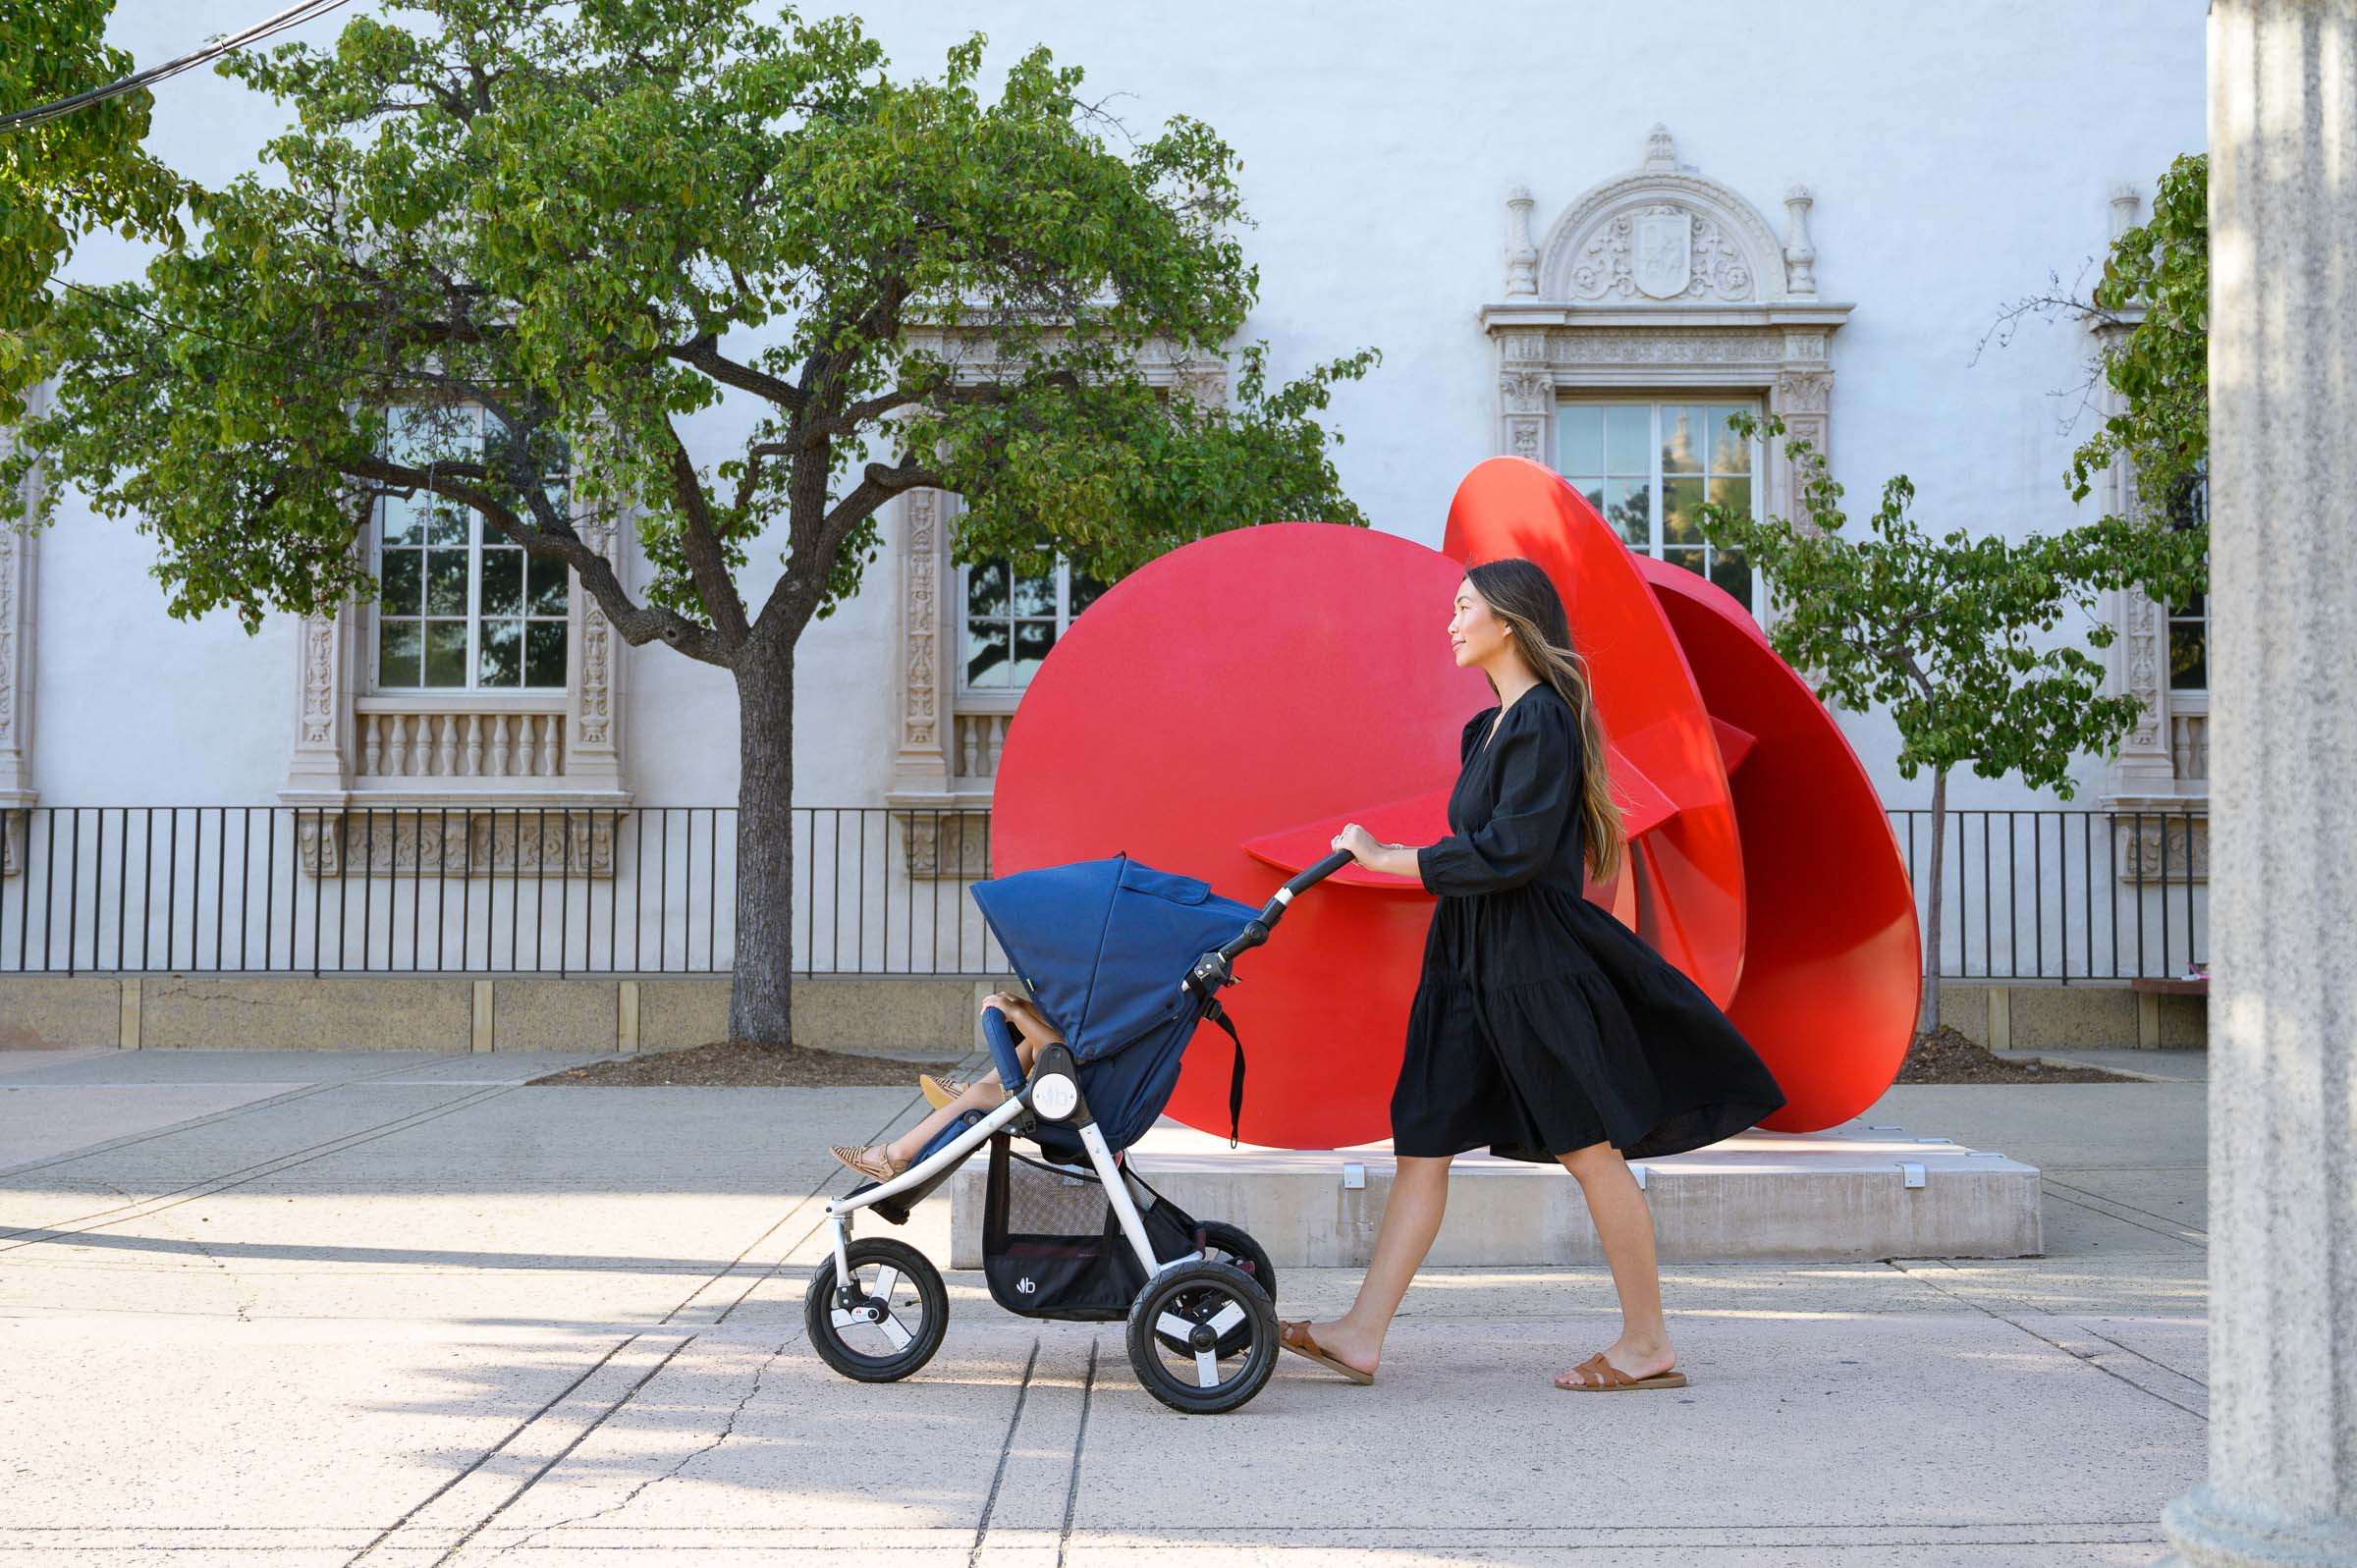 Mother pushing Indie in Maritime Blue in front of large red sculpture in background